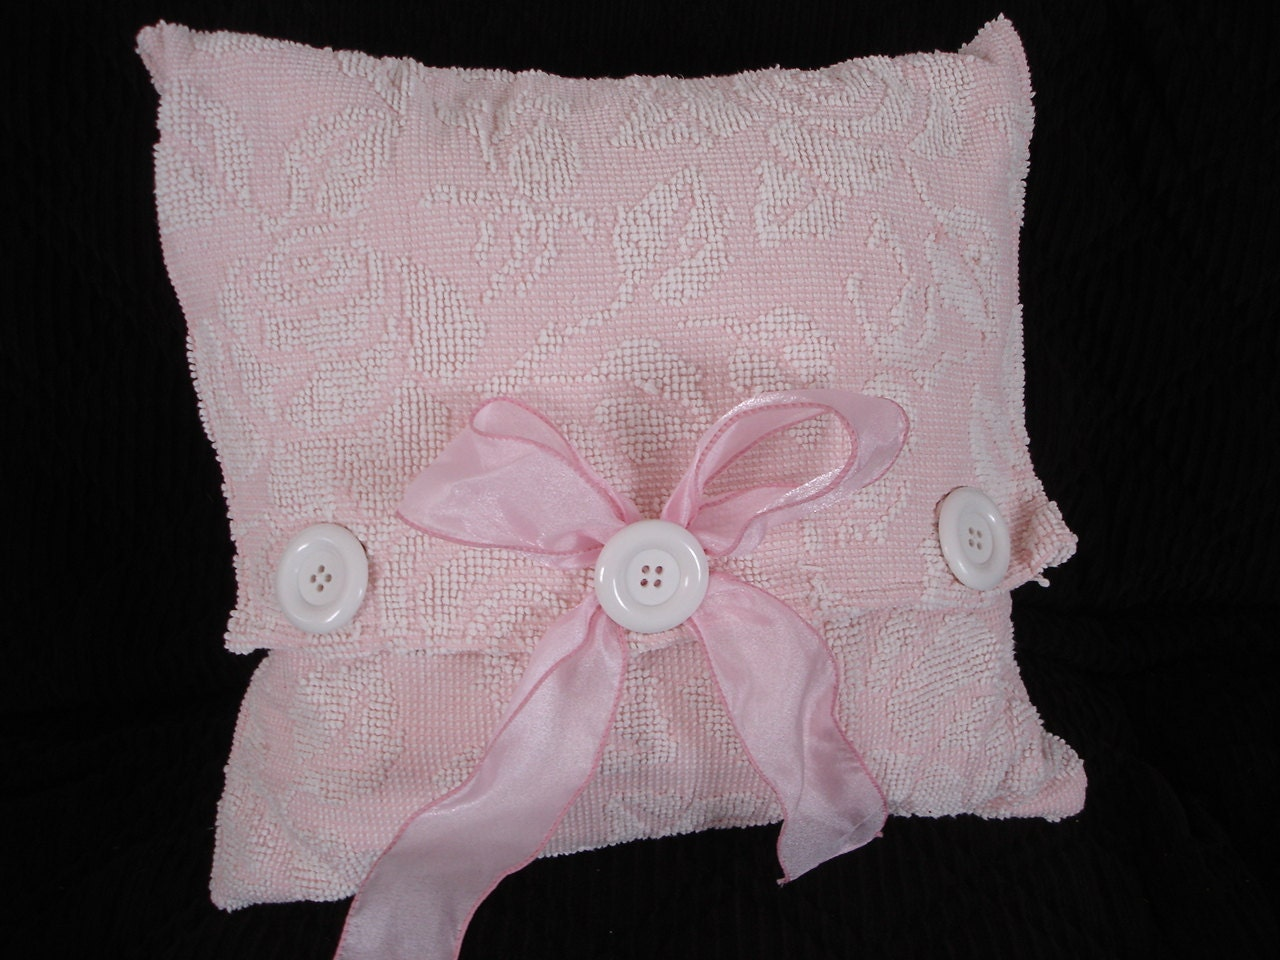 Chenille,Pillow,Pocket,18,inch,Vintage,Upcycled,Quilt,Housewares,chenille,upcycled,vintage,pillow,pillow_pocket,pillow_shell,pink_chenille,for_your_home_shop,pillow_form,home_decor,bedroom_decor,living_room_decor,throw_pillow,cotton chenille,ribbon,plastic